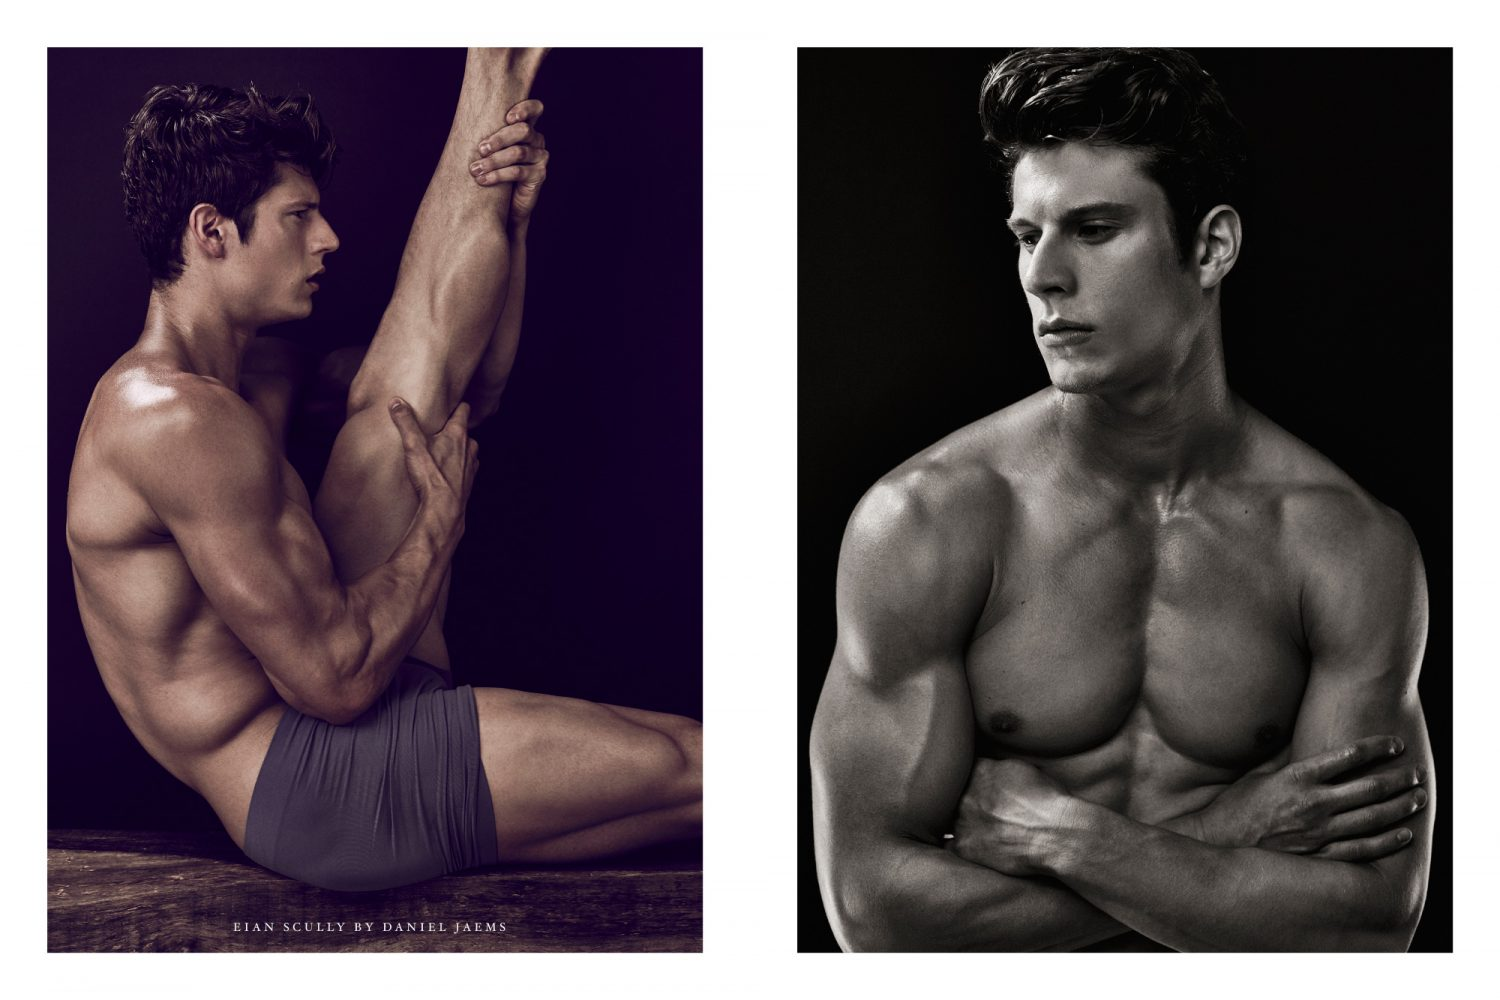 Eian-Scully-by-Daniel-Jaems-Obsession-No17-010-1500x1000 (1)